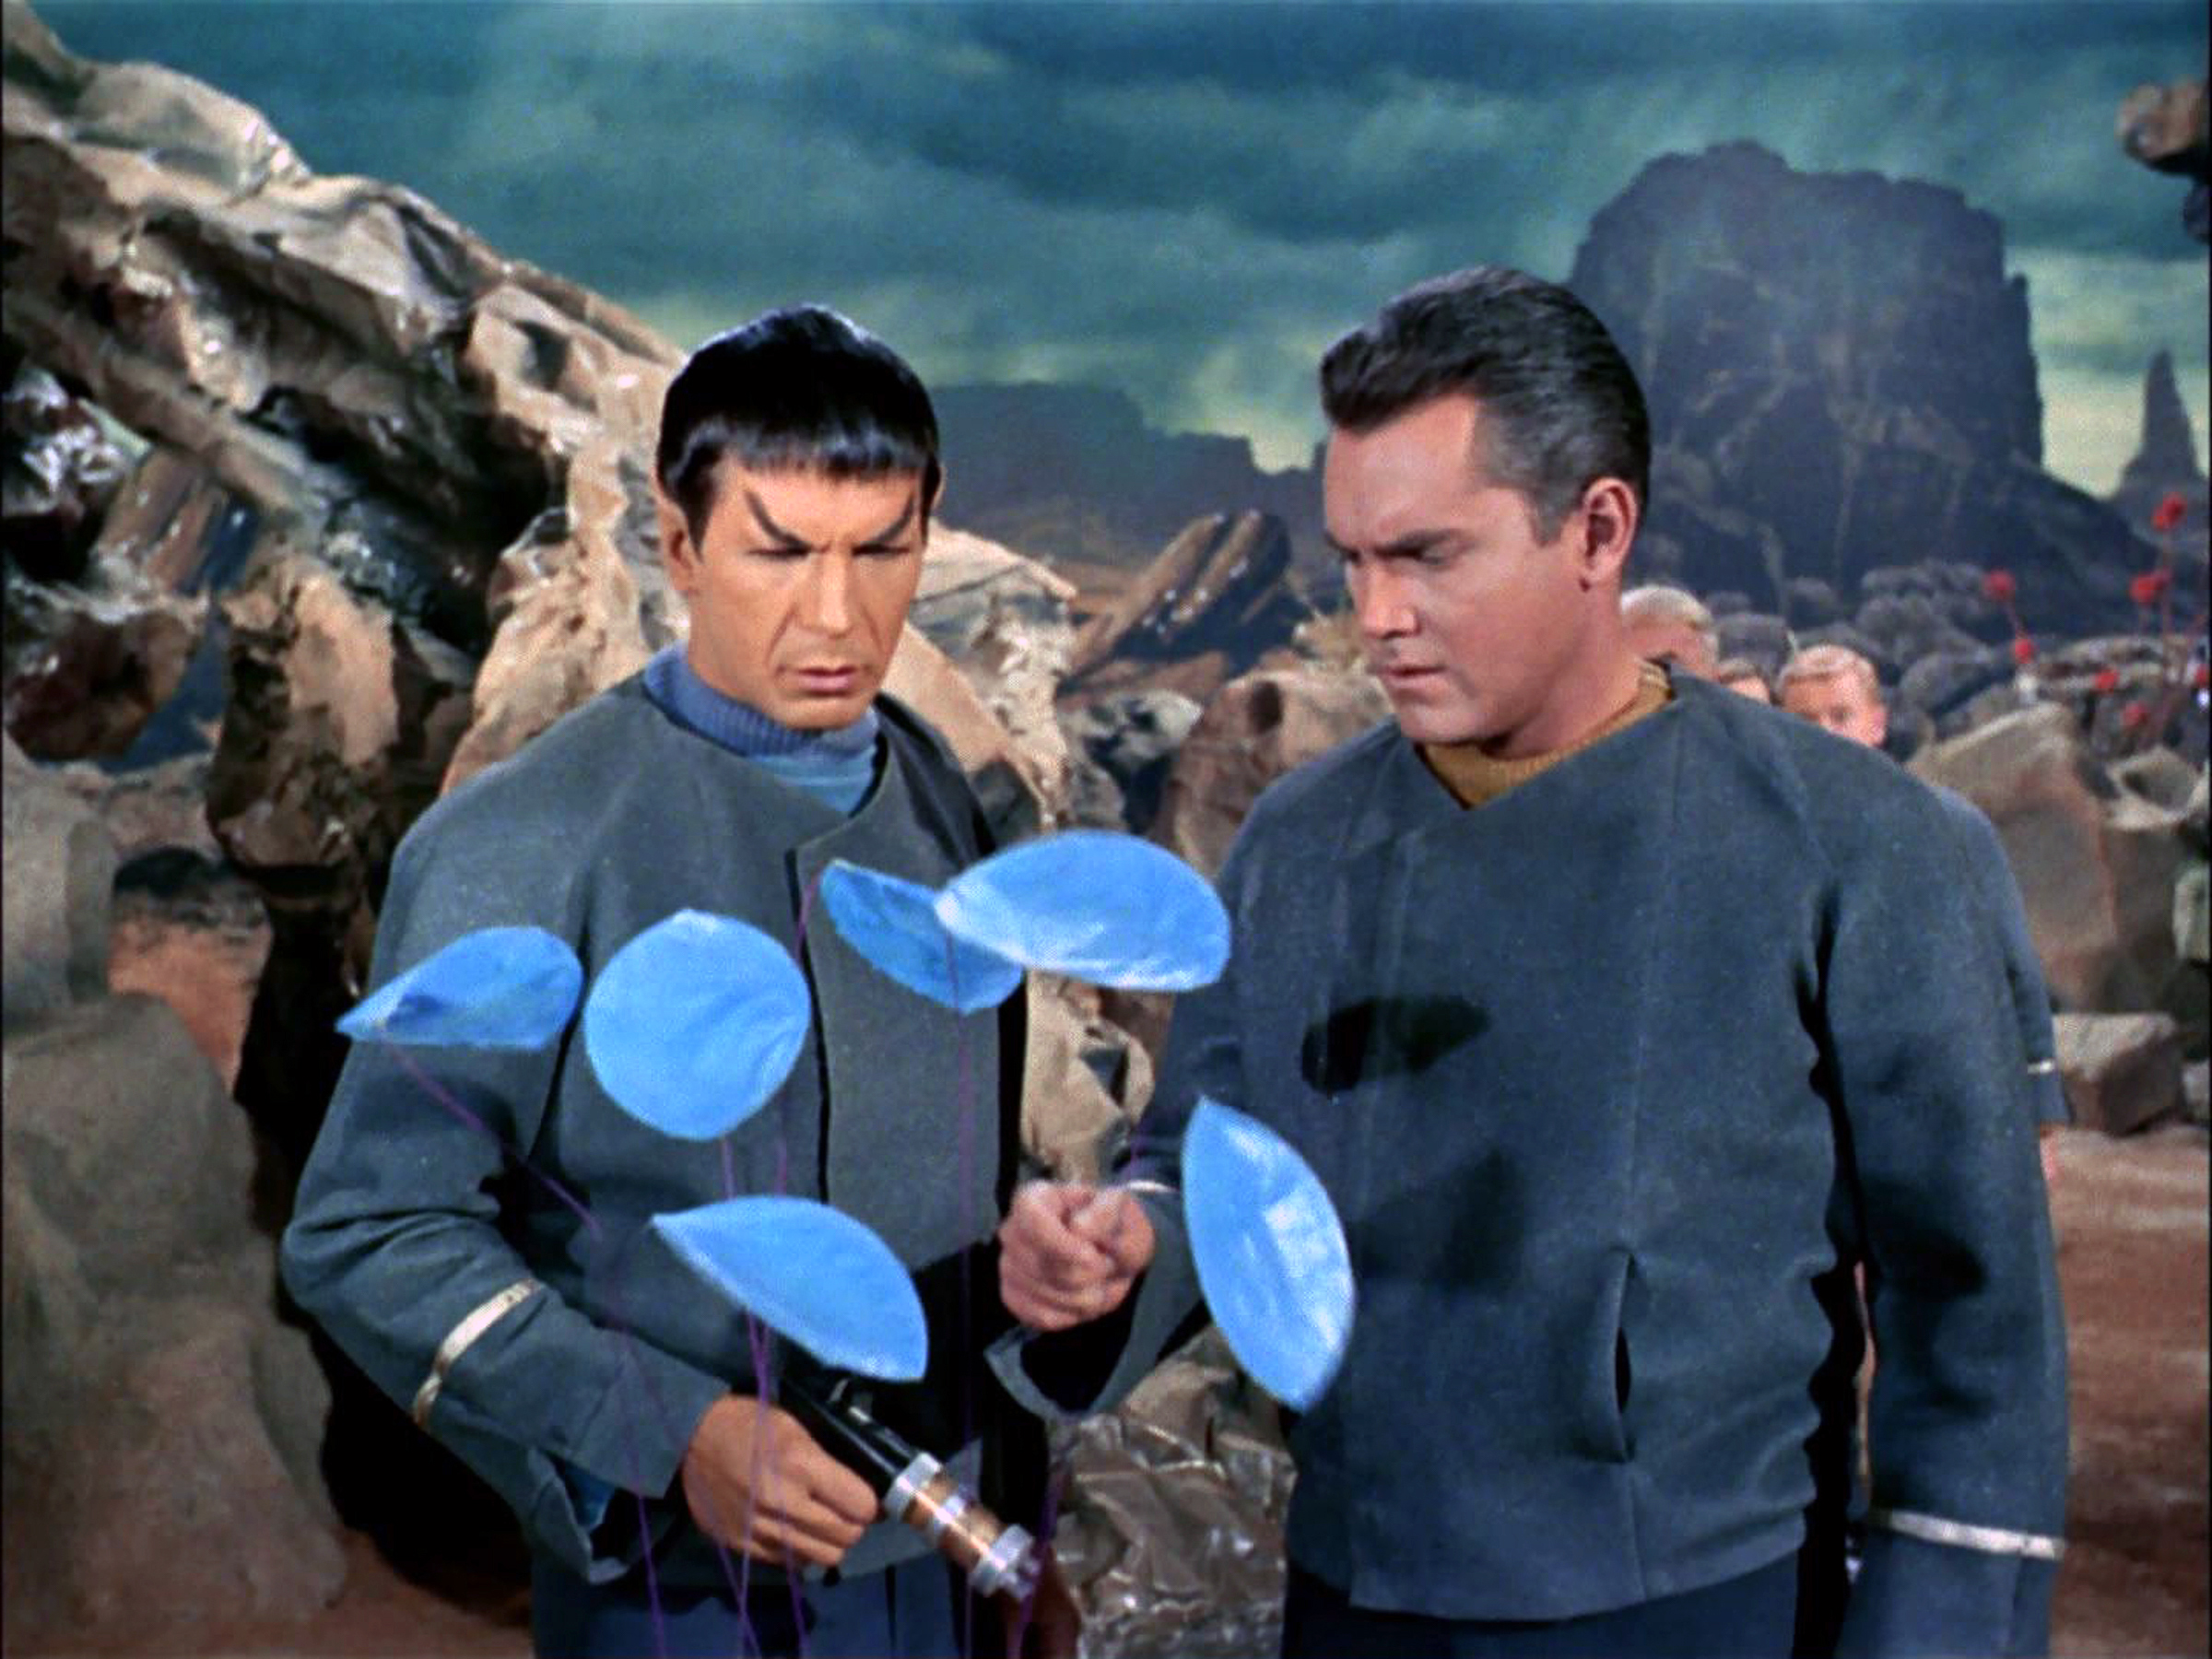 Leonard Nimoy as Mr. Spock and Jeffrey Hunter as Captain Christopher Pike on the planet Talos IV.